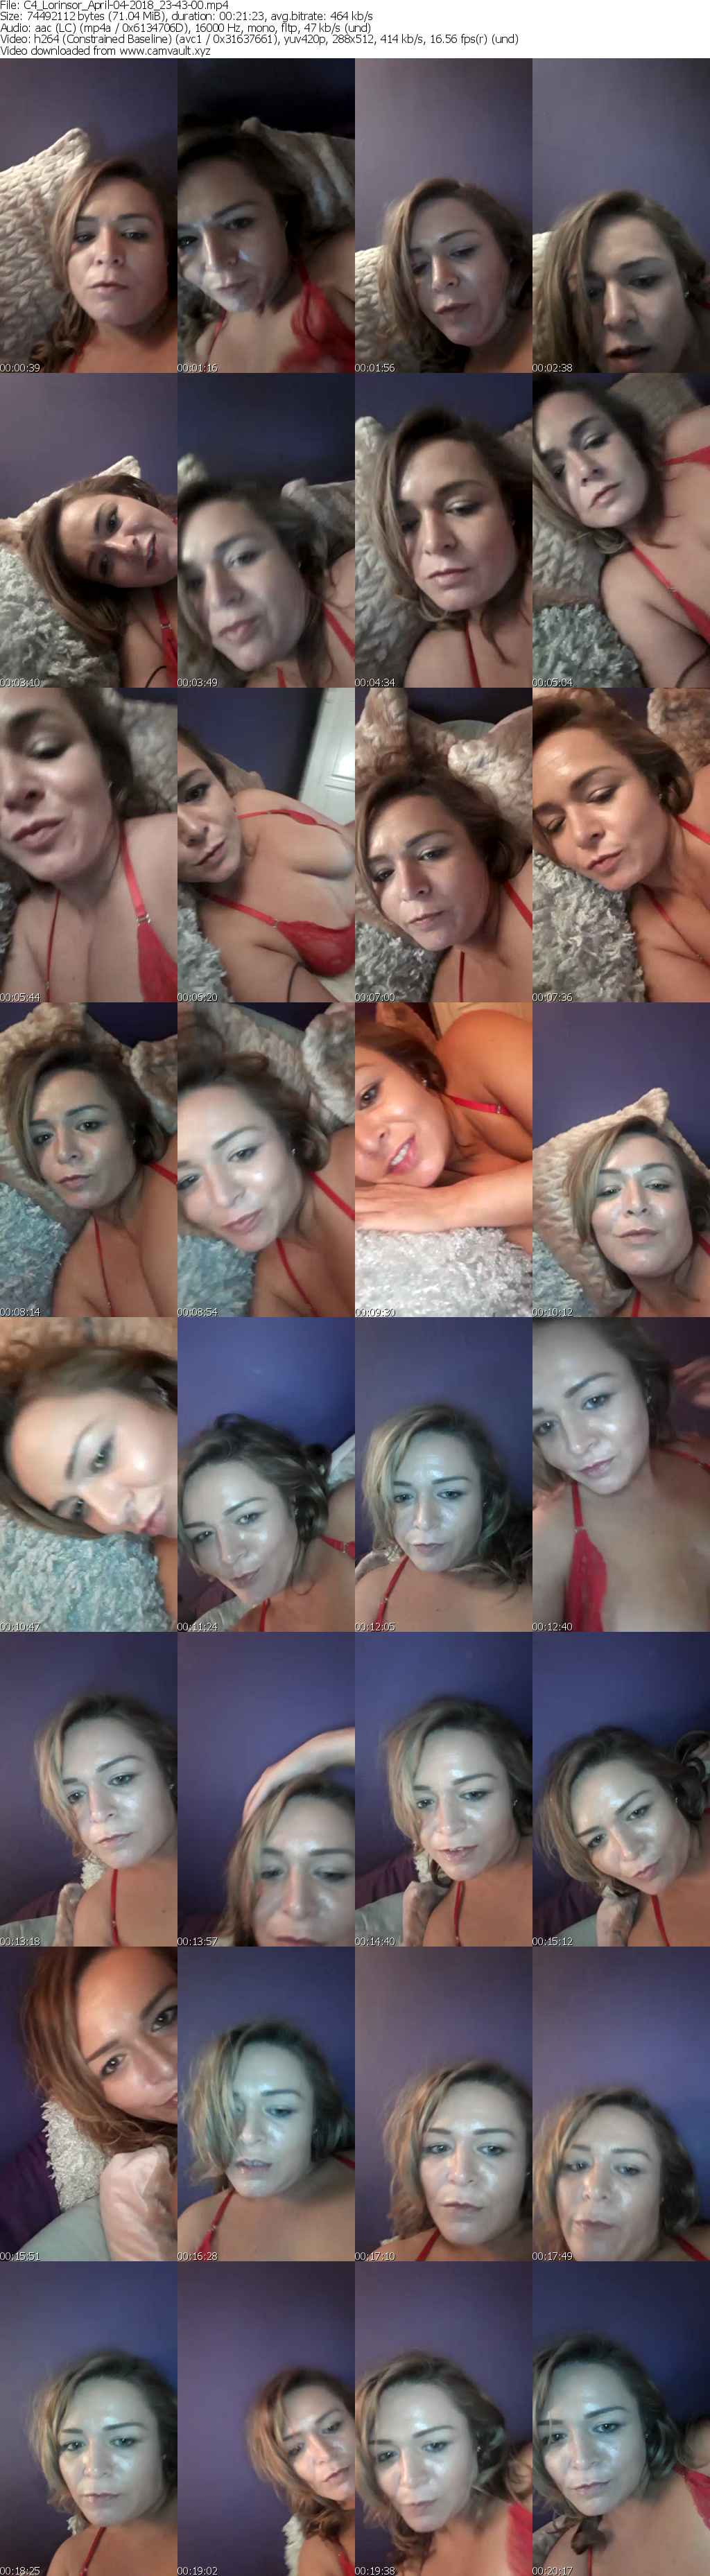 Video preview for model Lorinsor